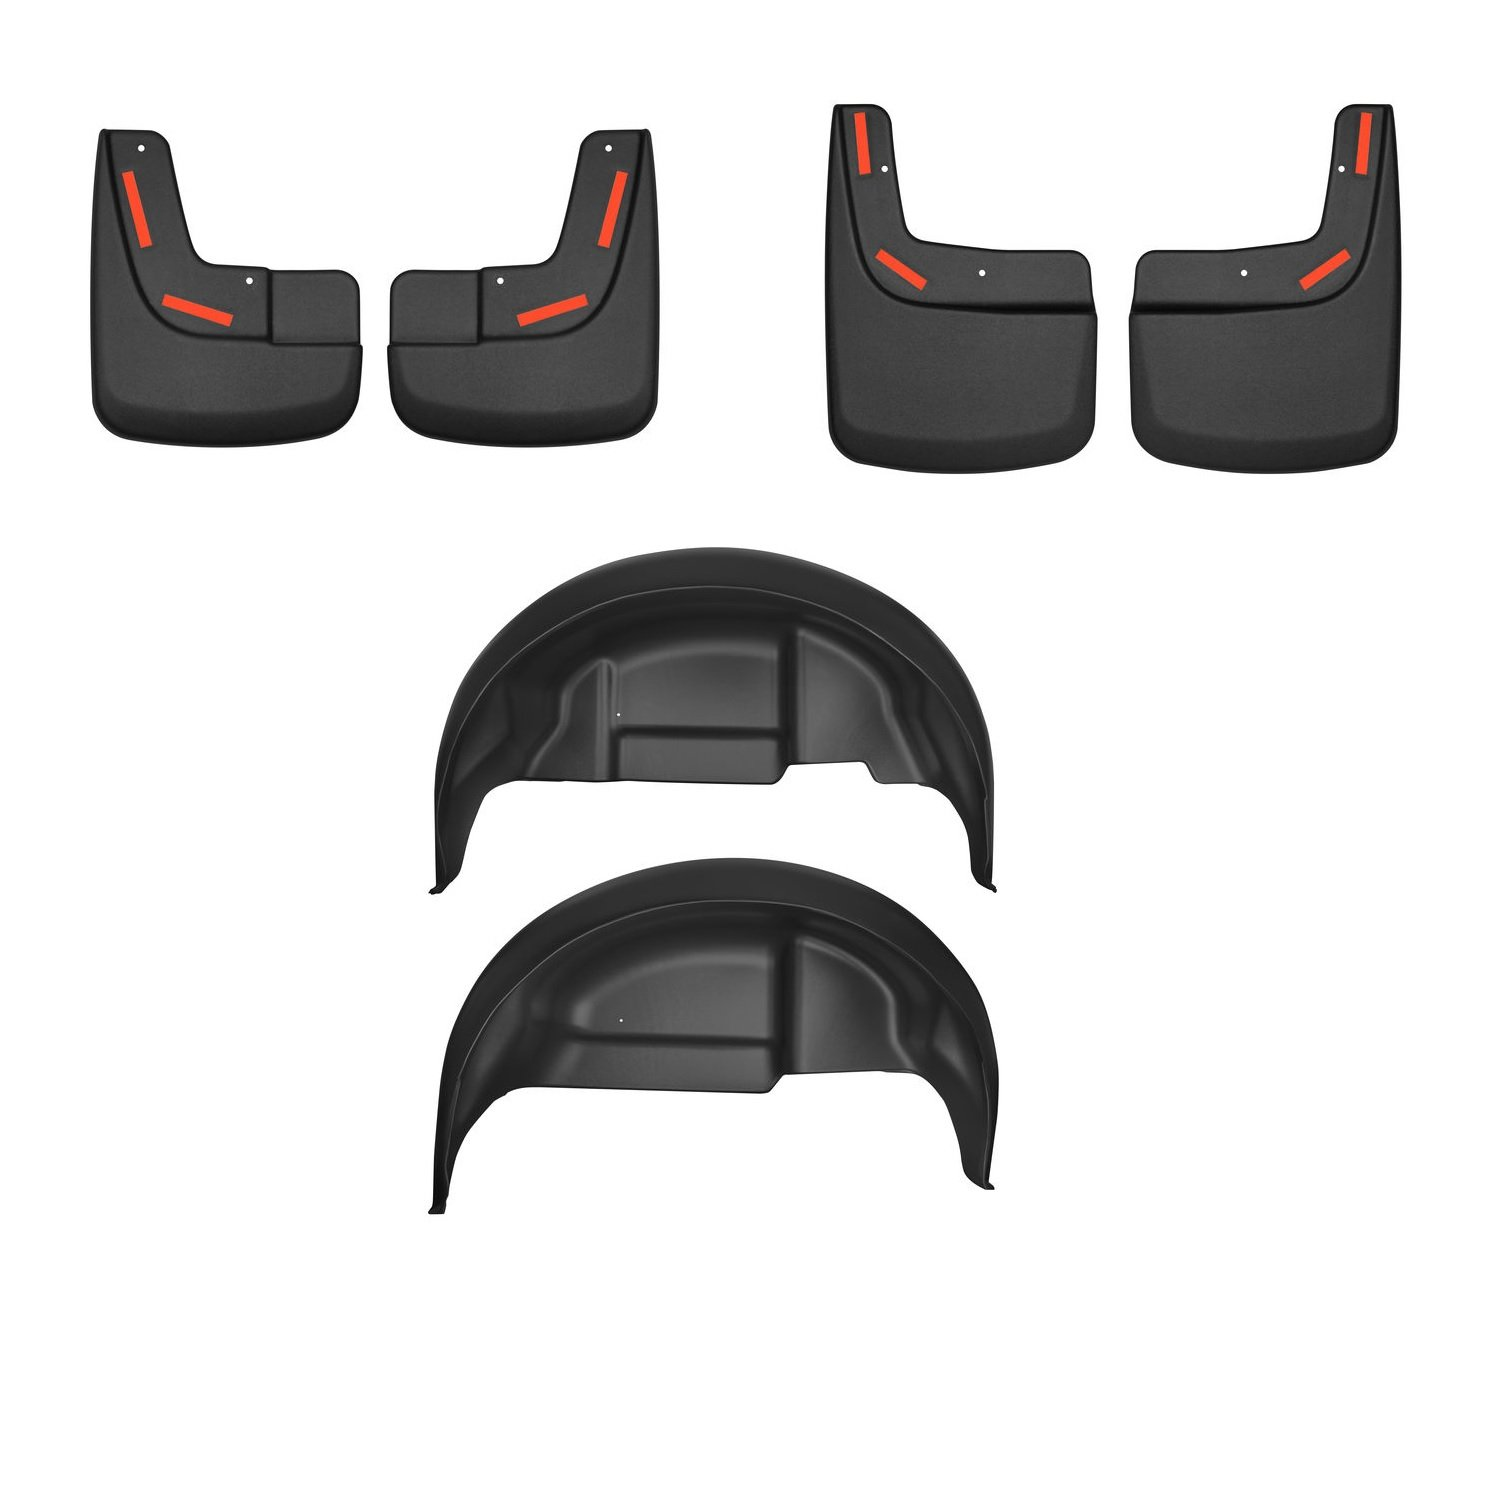 HUSKYLINERS 58491/59491/79141 Front Rear Wheel Mud Guards w/Rear Wheel Well Guards for 17-18 Ford F-150 Raptor